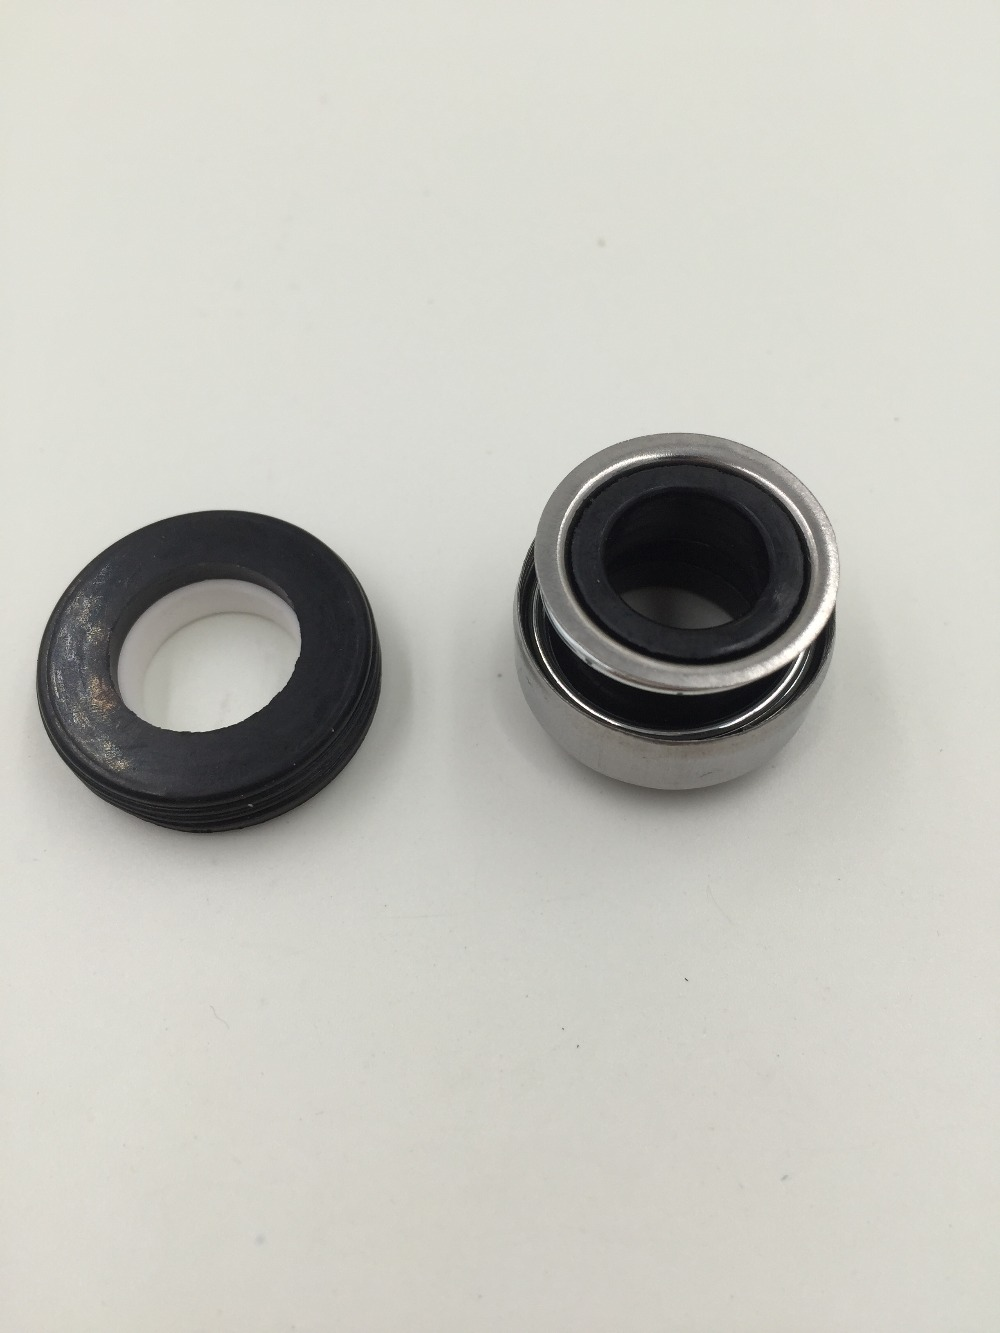 Metal Spring 12mm Inner Dia Rubber Bellows Water Pump Mechanical Seal 10pcs 208 17 17mm internal dia metal single spring bellows mechanical shaft seal page 6